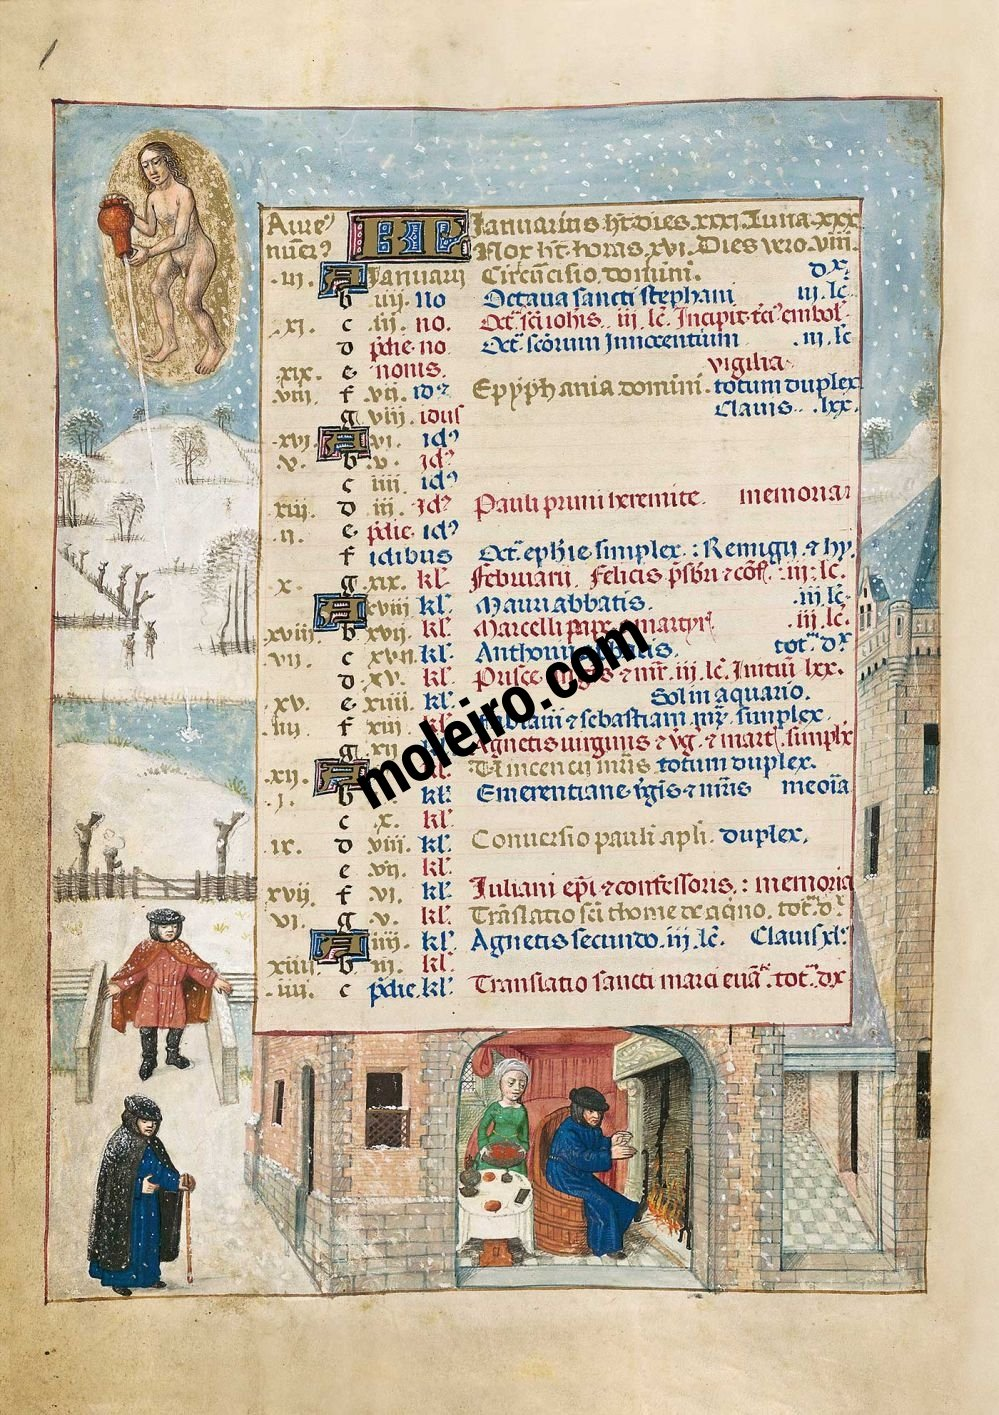 The Isabella Breviary f. 1v, January